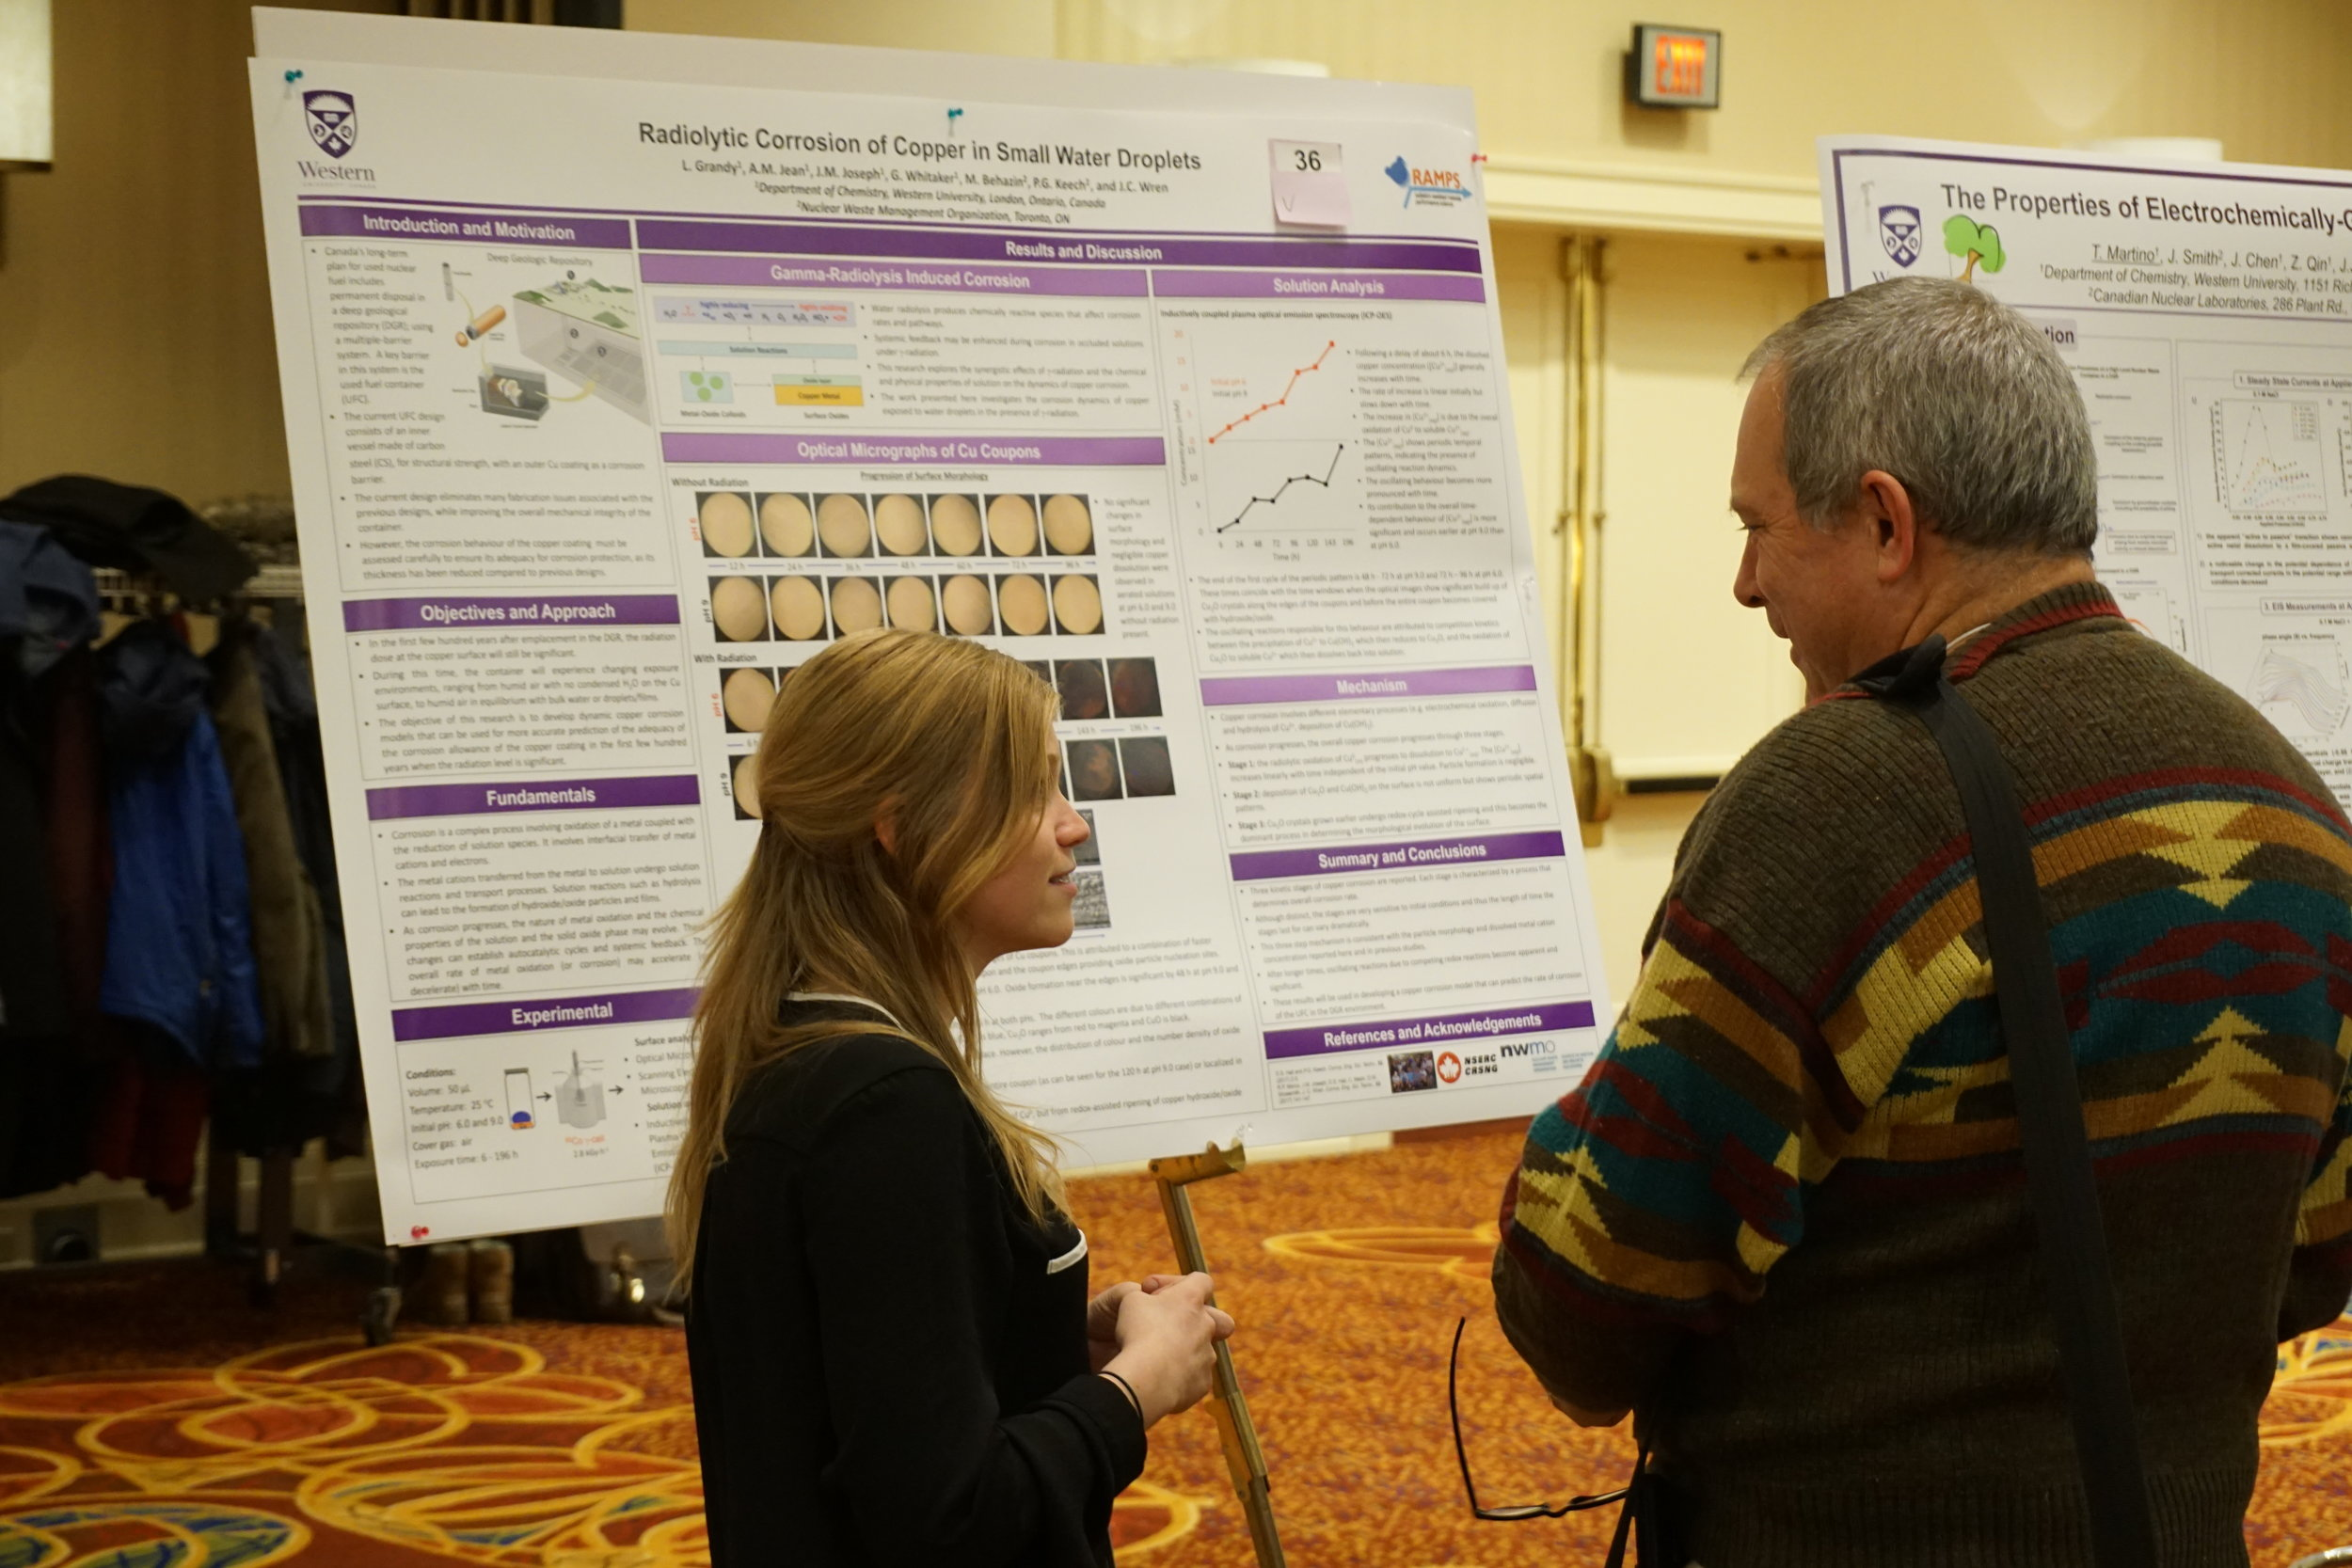 Graduate student Lindsay Grandy discussing her poster at the UNENE meeting, December 2017.